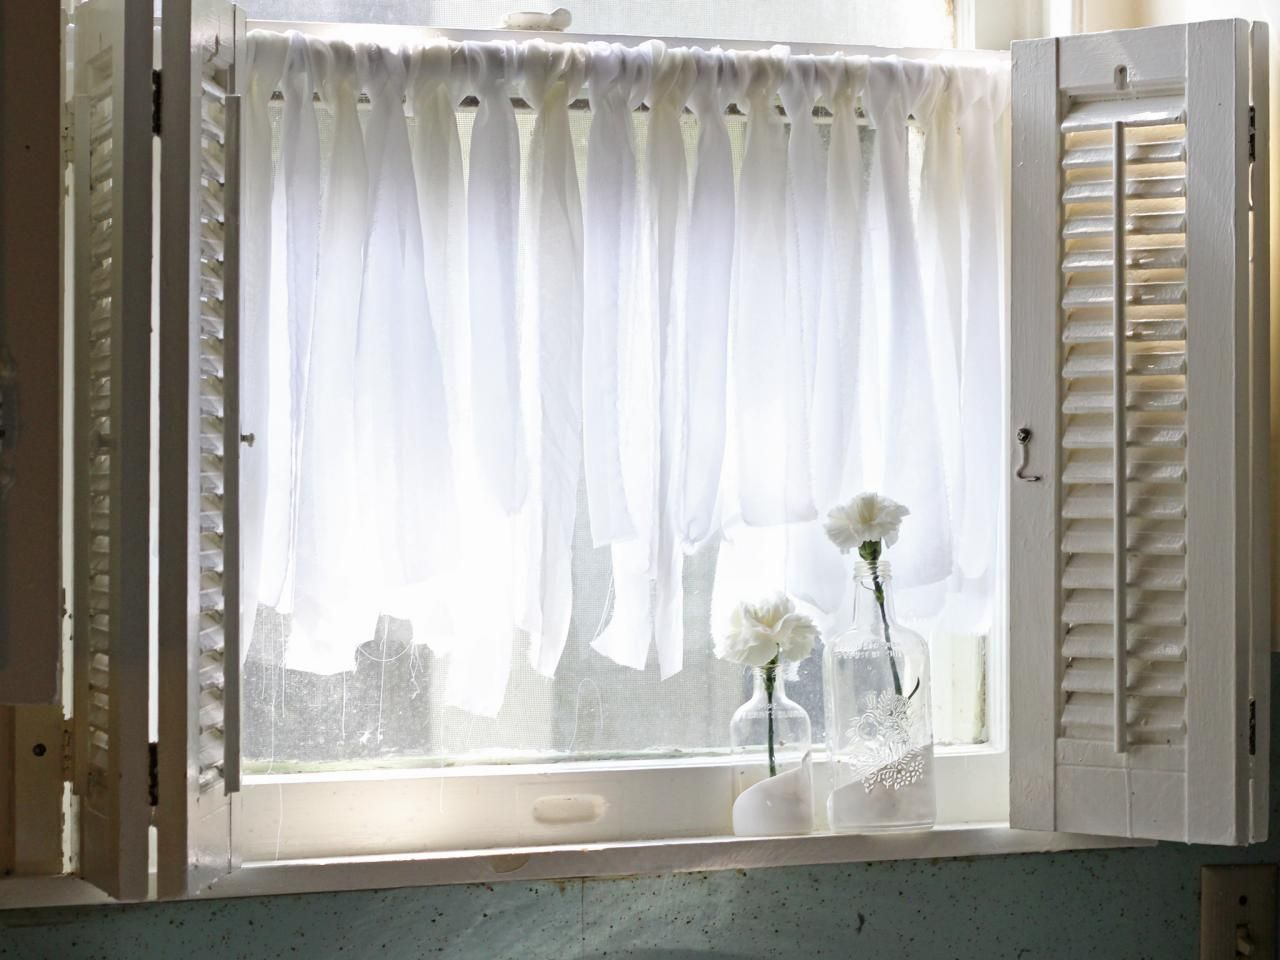 Diy bathroom curtain ideas - 12 Easy Diy Window Treatments